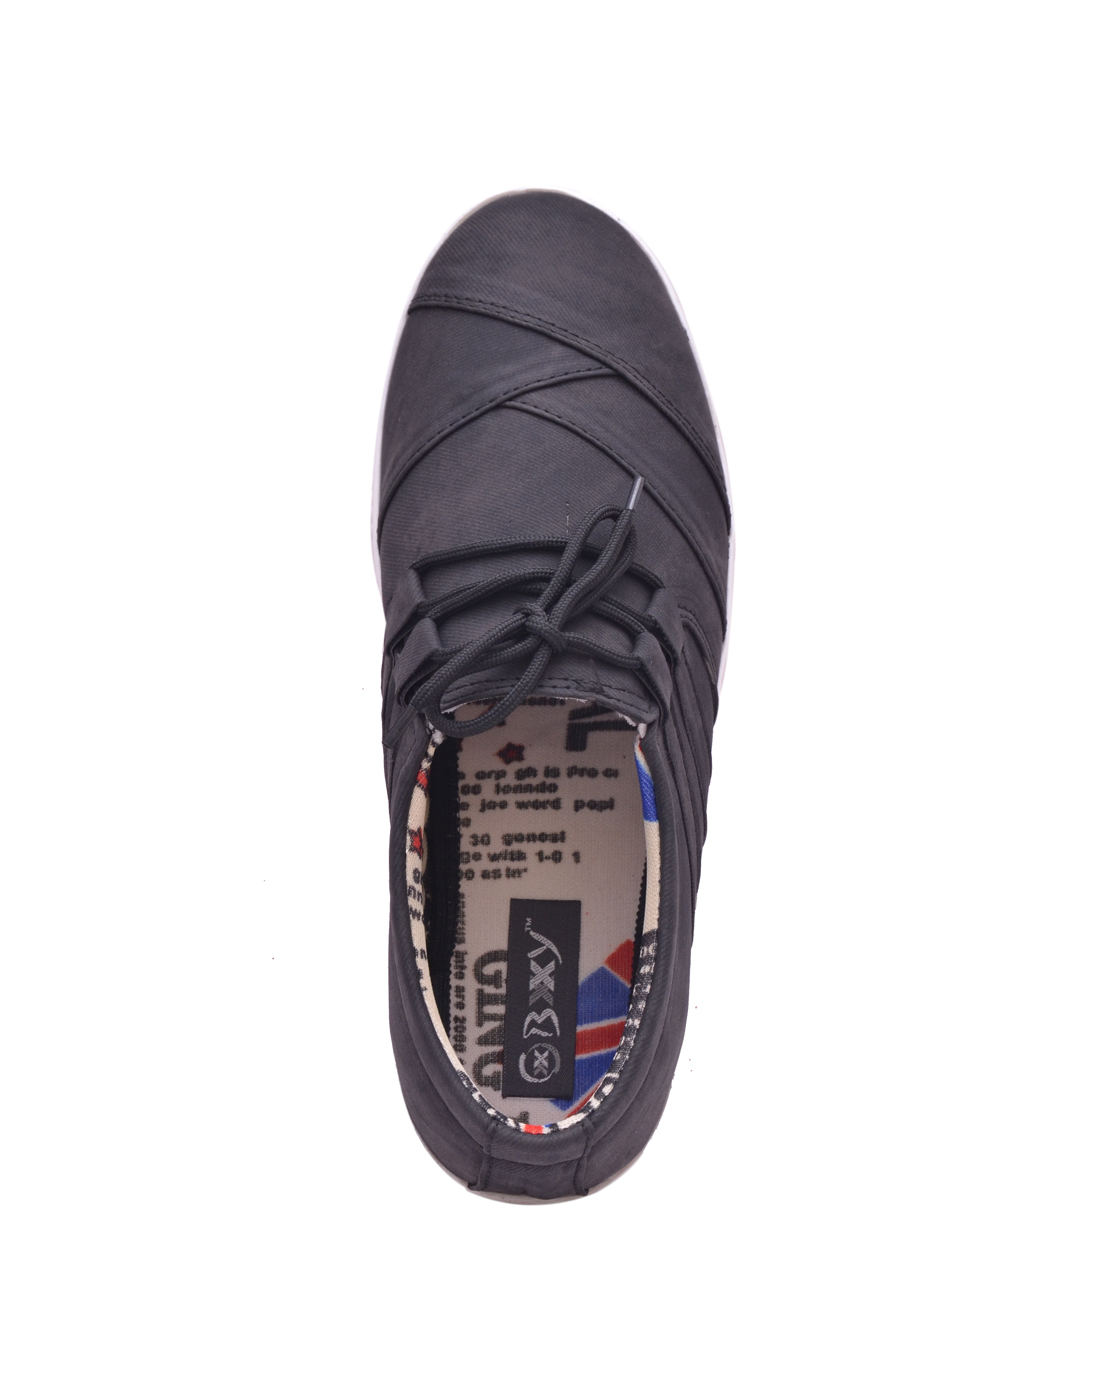 LACE-UP CASUAL SHOES FOR MEN'S